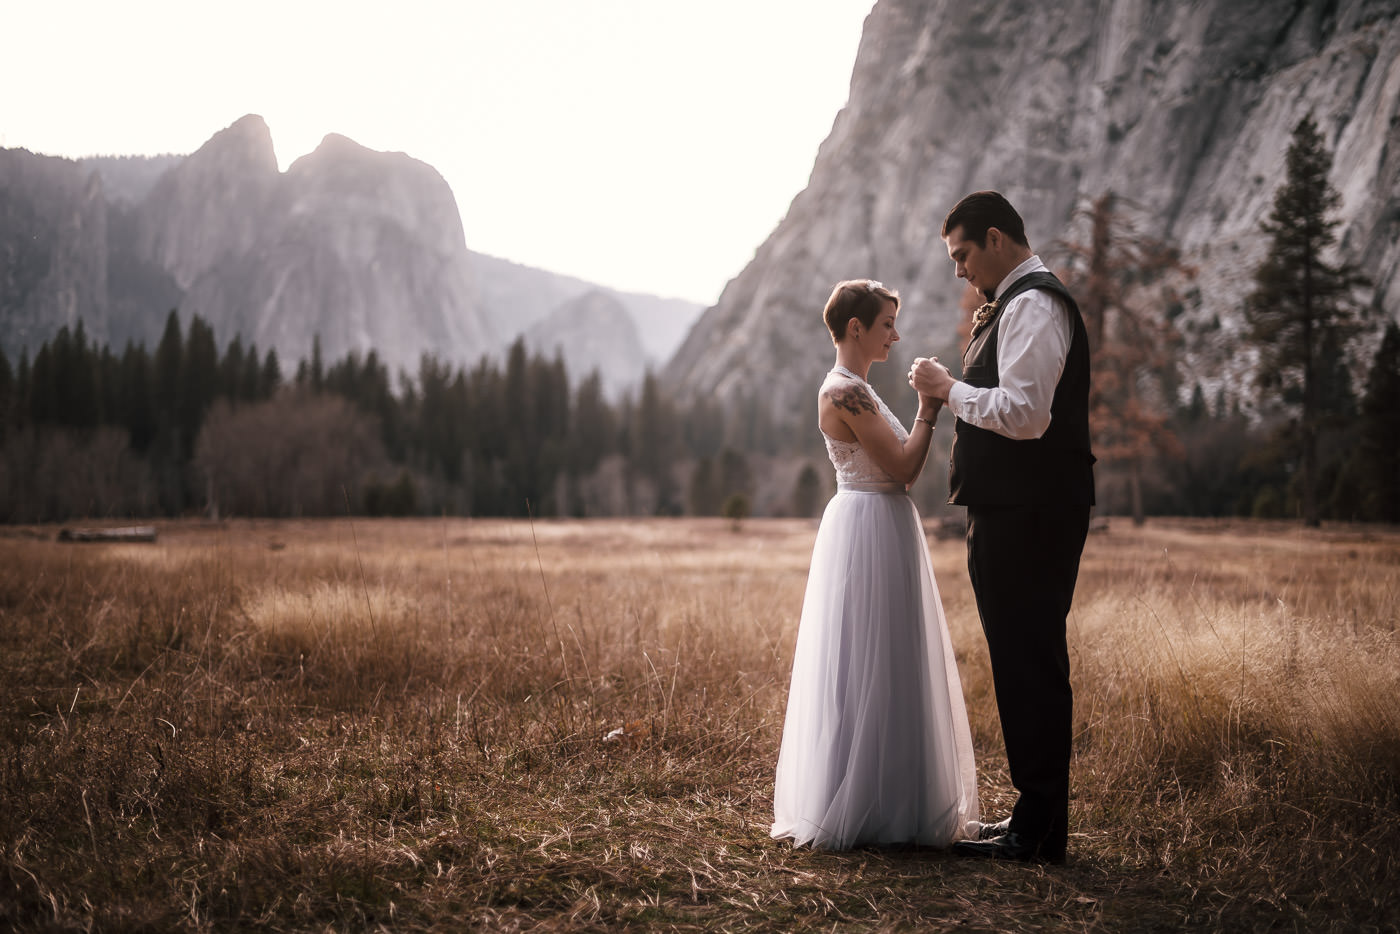 Wedding Venues: Twelve to one hundred guests - With more than eleven guests you'll be restricted to one of several gorgeous locations from the official list provided by Yosemite National Park. They can accommodate ceremonies ranging from intimate elopements to weddings with up to one hundred guests. Each site has its' own guest limits so make sure it will fit your needs.